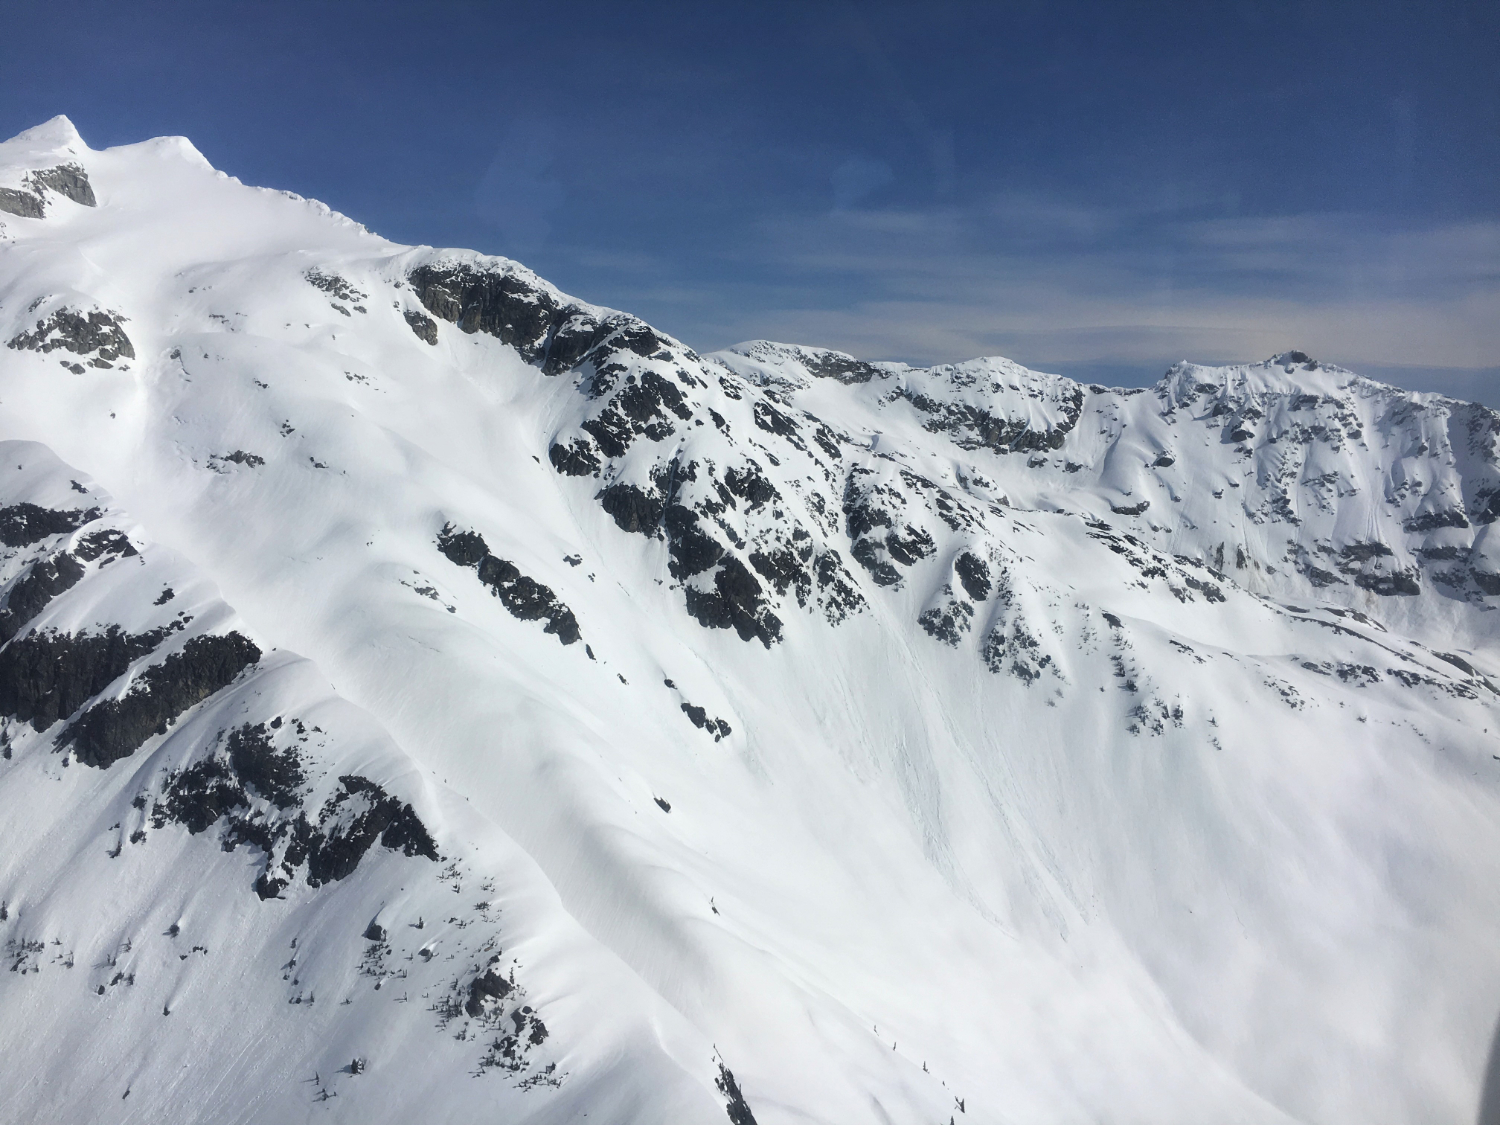 mountain scenery from helicopter ride